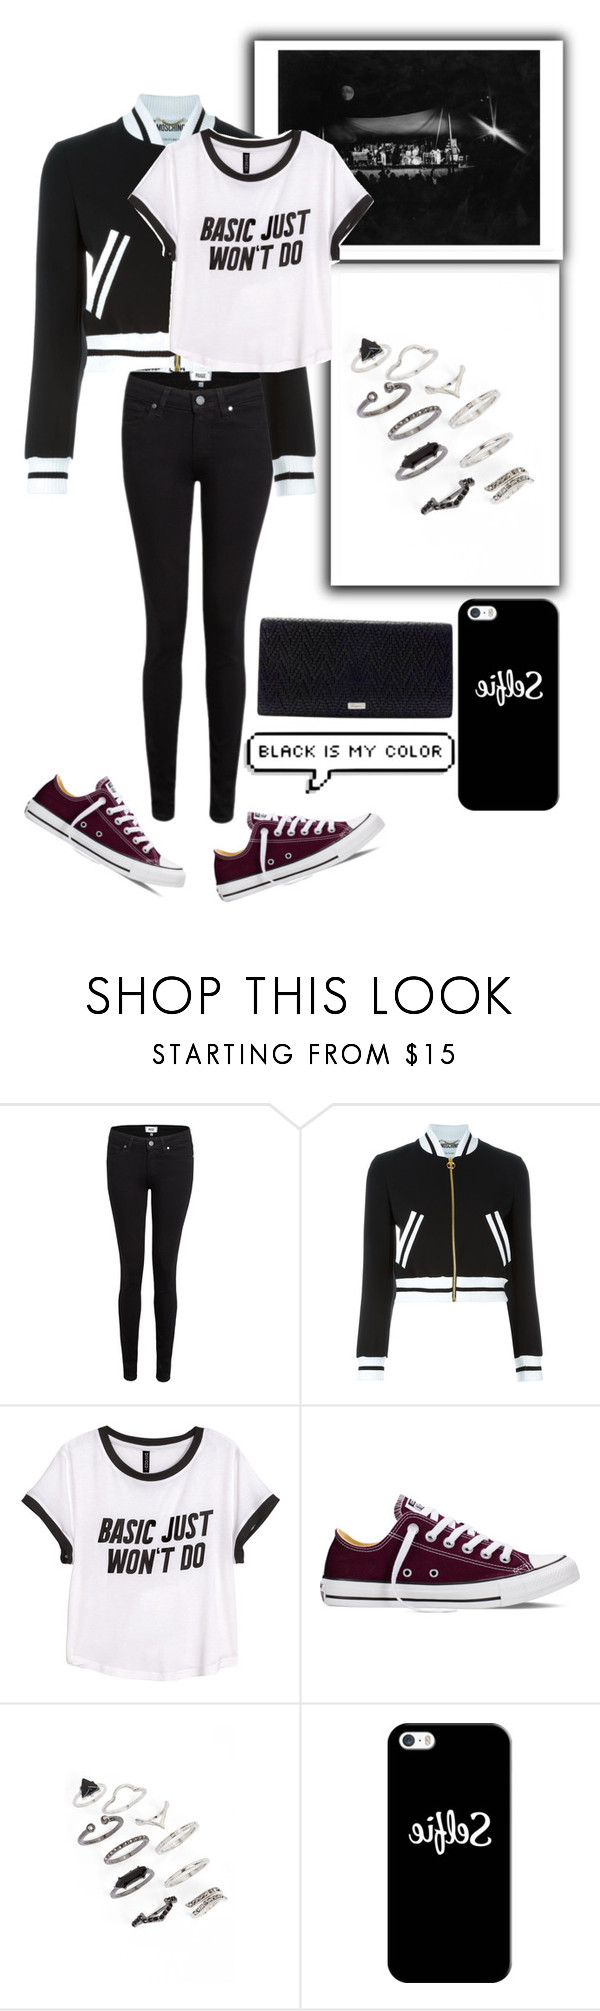 """Dresscode: Black❤"" by nisaarn ❤ liked on Polyvore featuring Paige Denim, Moschino, H&M, Converse, Topshop, Casetify, Salvatore Ferragamo, women's clothing, women and female"